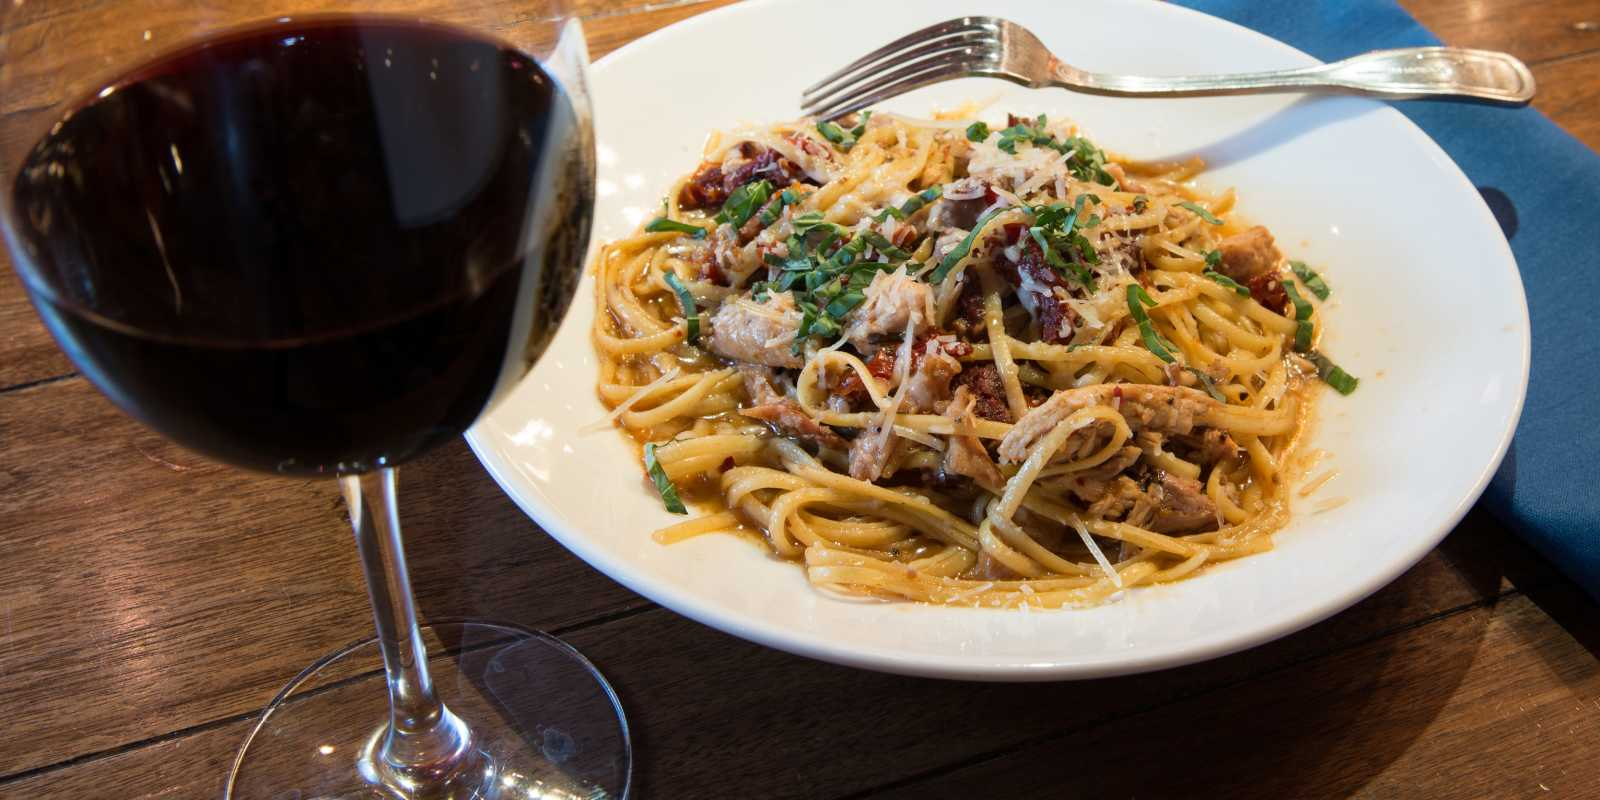 Creamy pasta and a nice red at ORSO in Anchorage